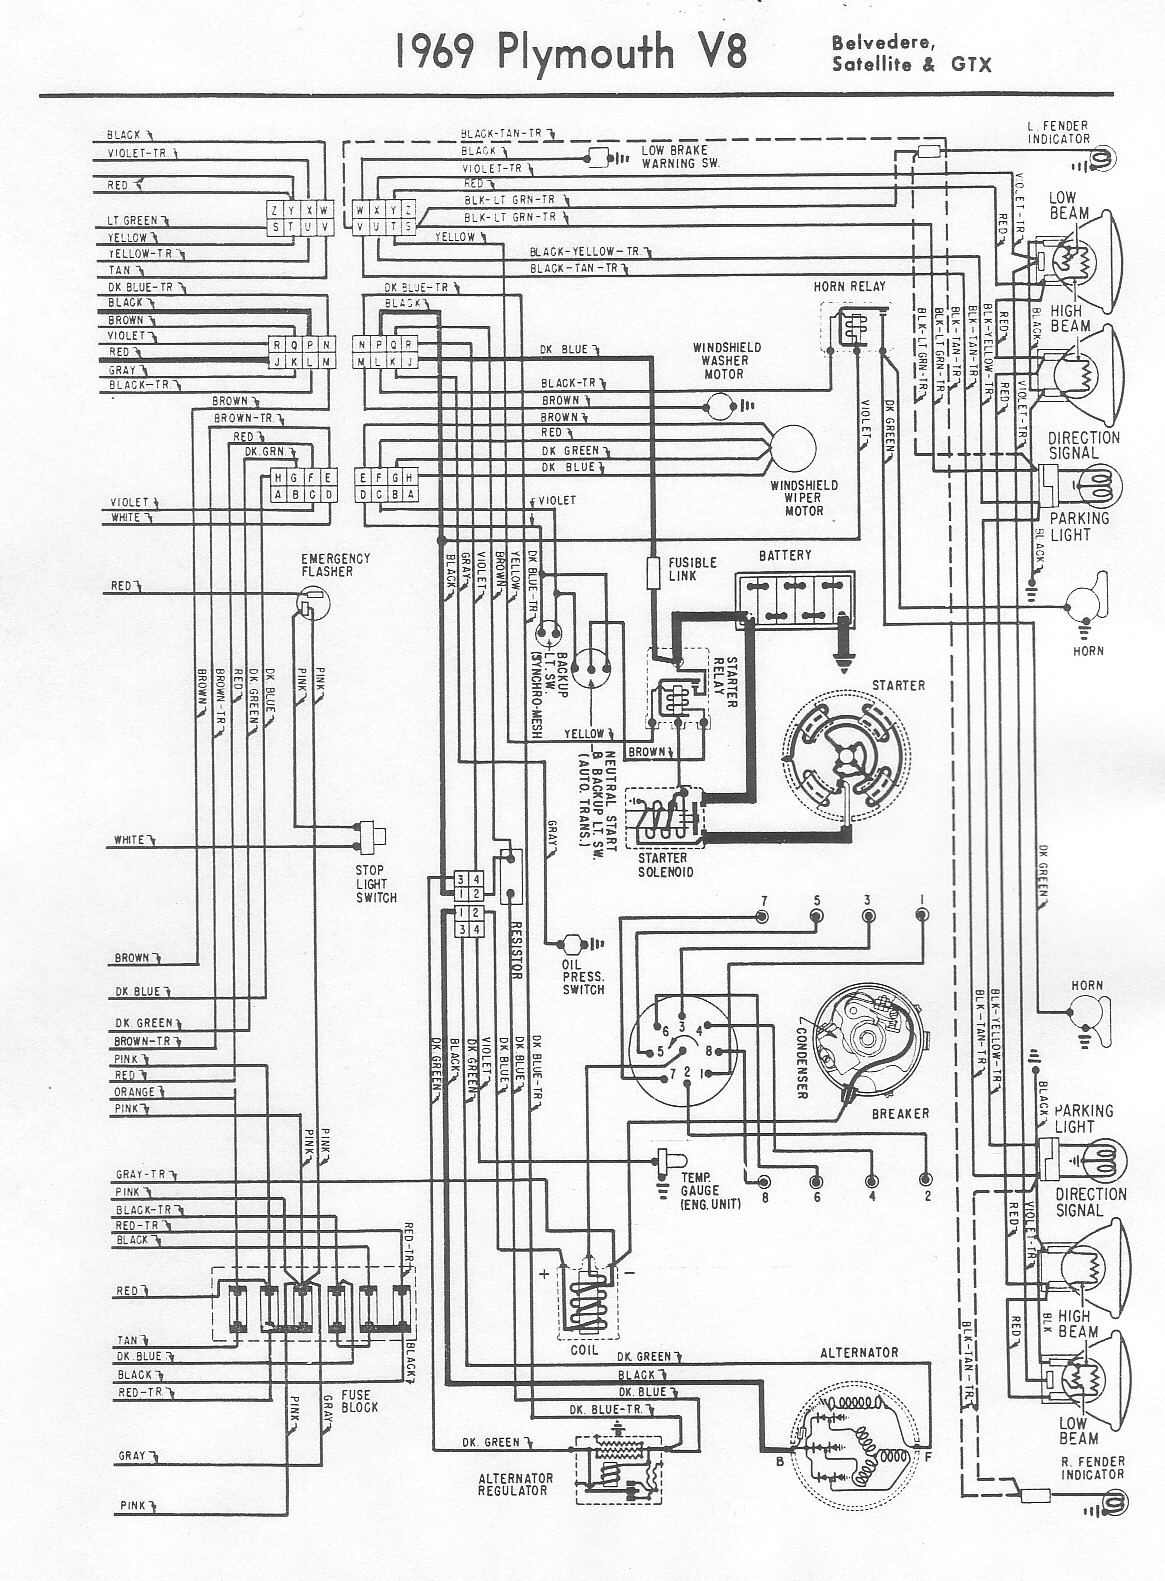 68 plymouth wiring diagram wiring diagram 1965 plymouth satellite wiring diagram